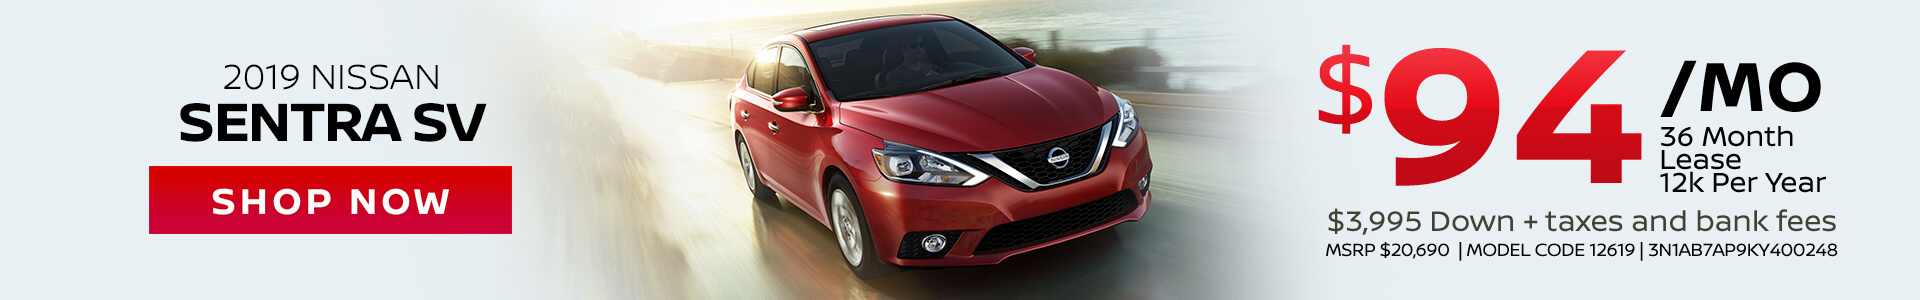 Nissan Sentra $94 Lease